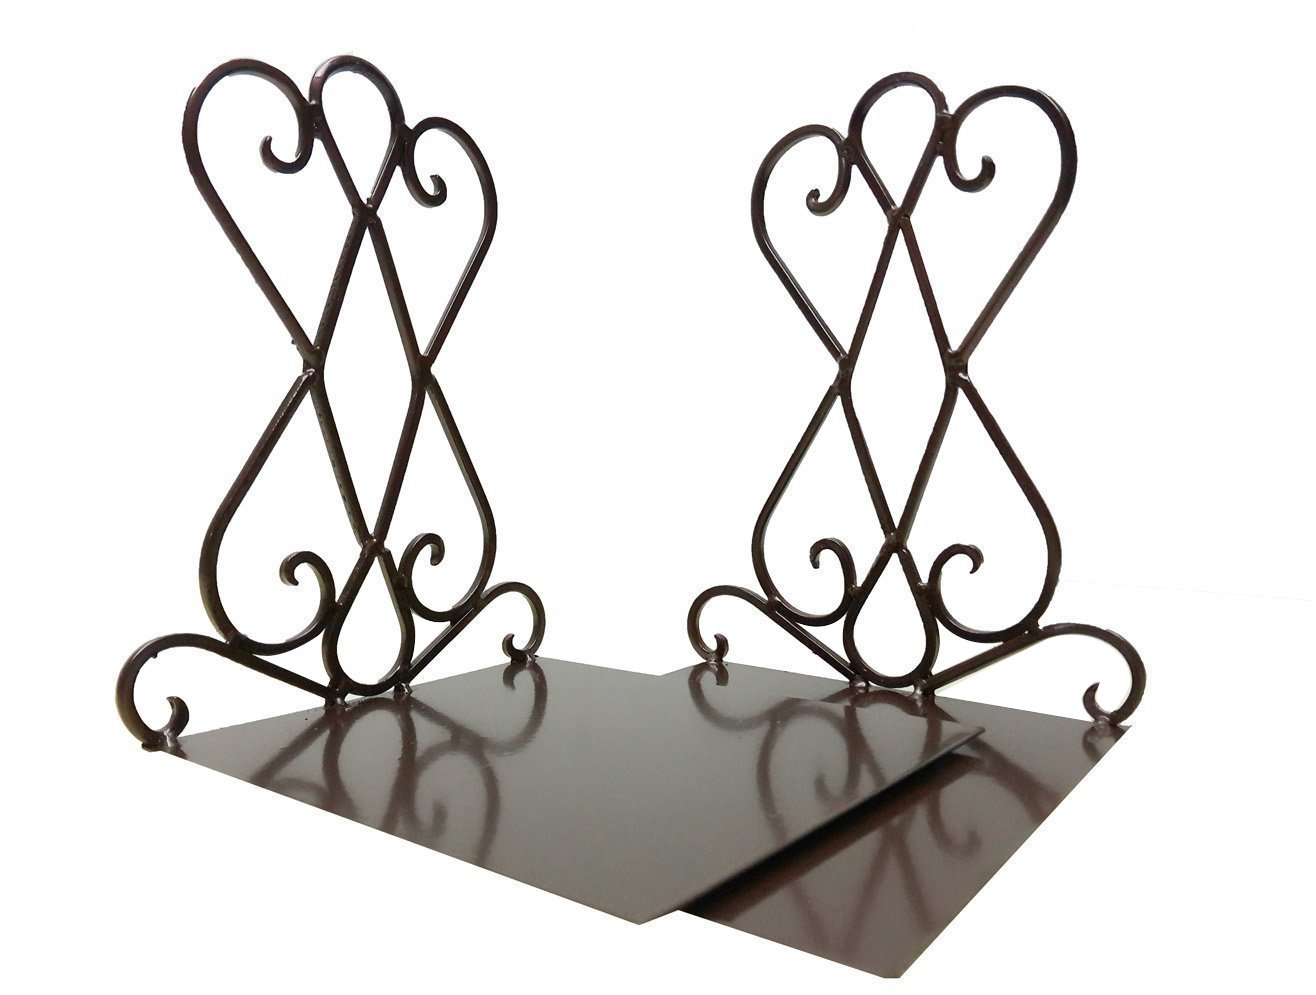 Vintage Retro Antique Iron Bookend Shelf Book End Bookend Home Office School Decoration (Brown)